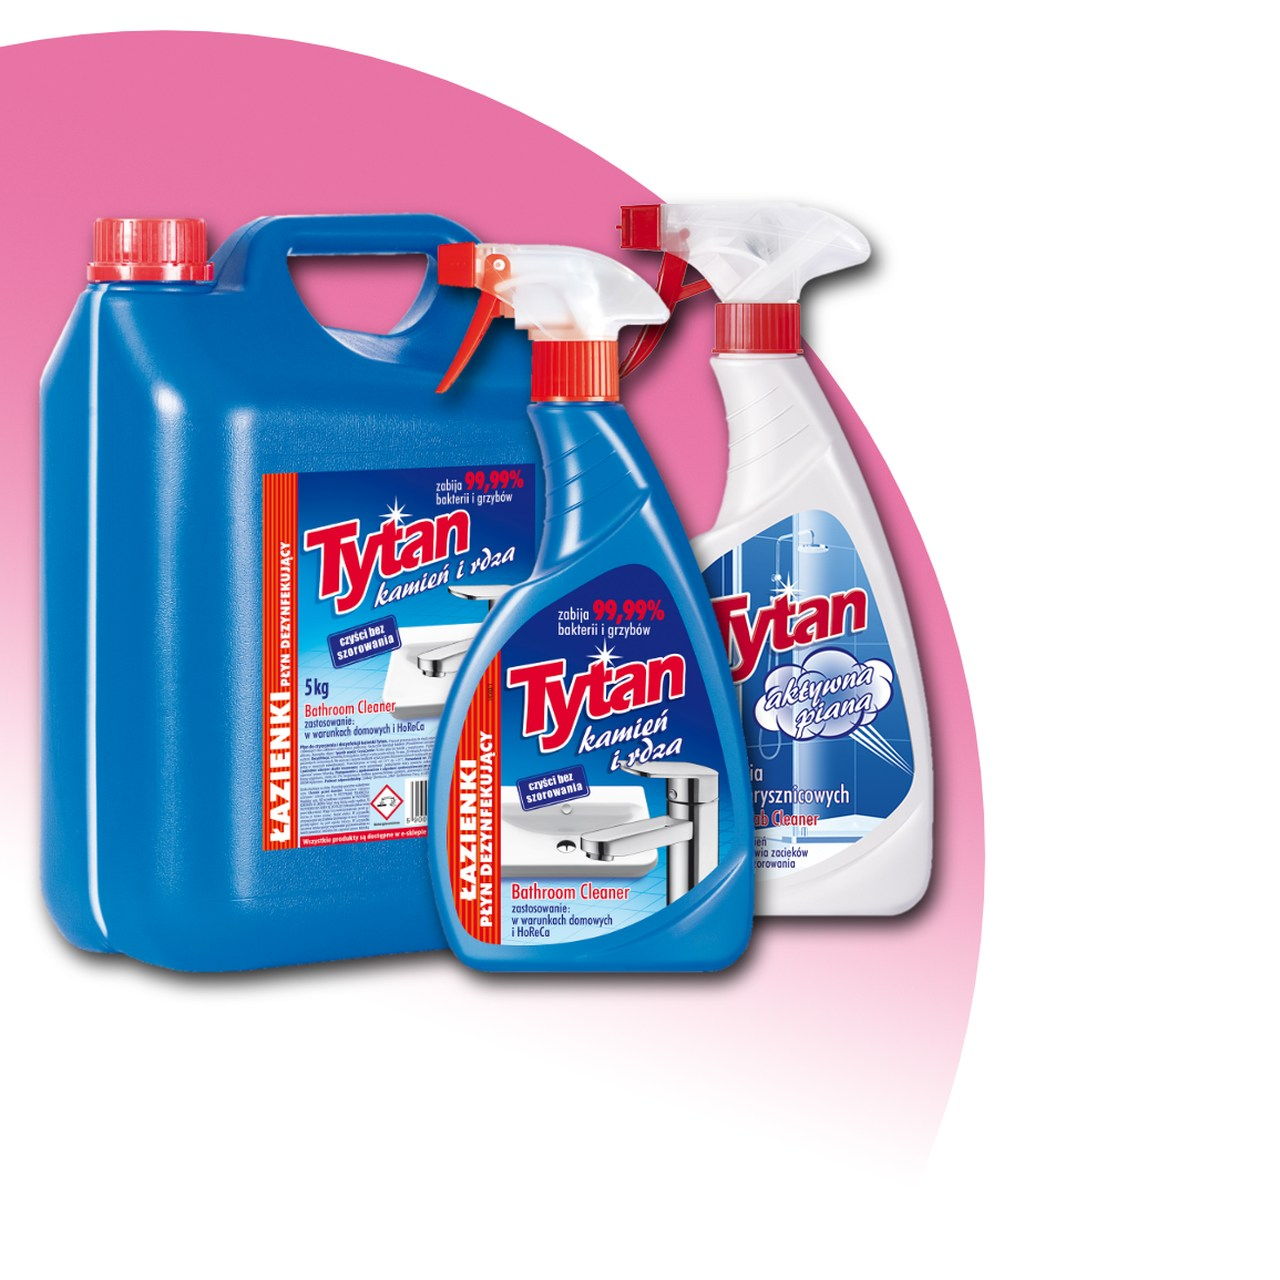 Manufacturer of cleaning products